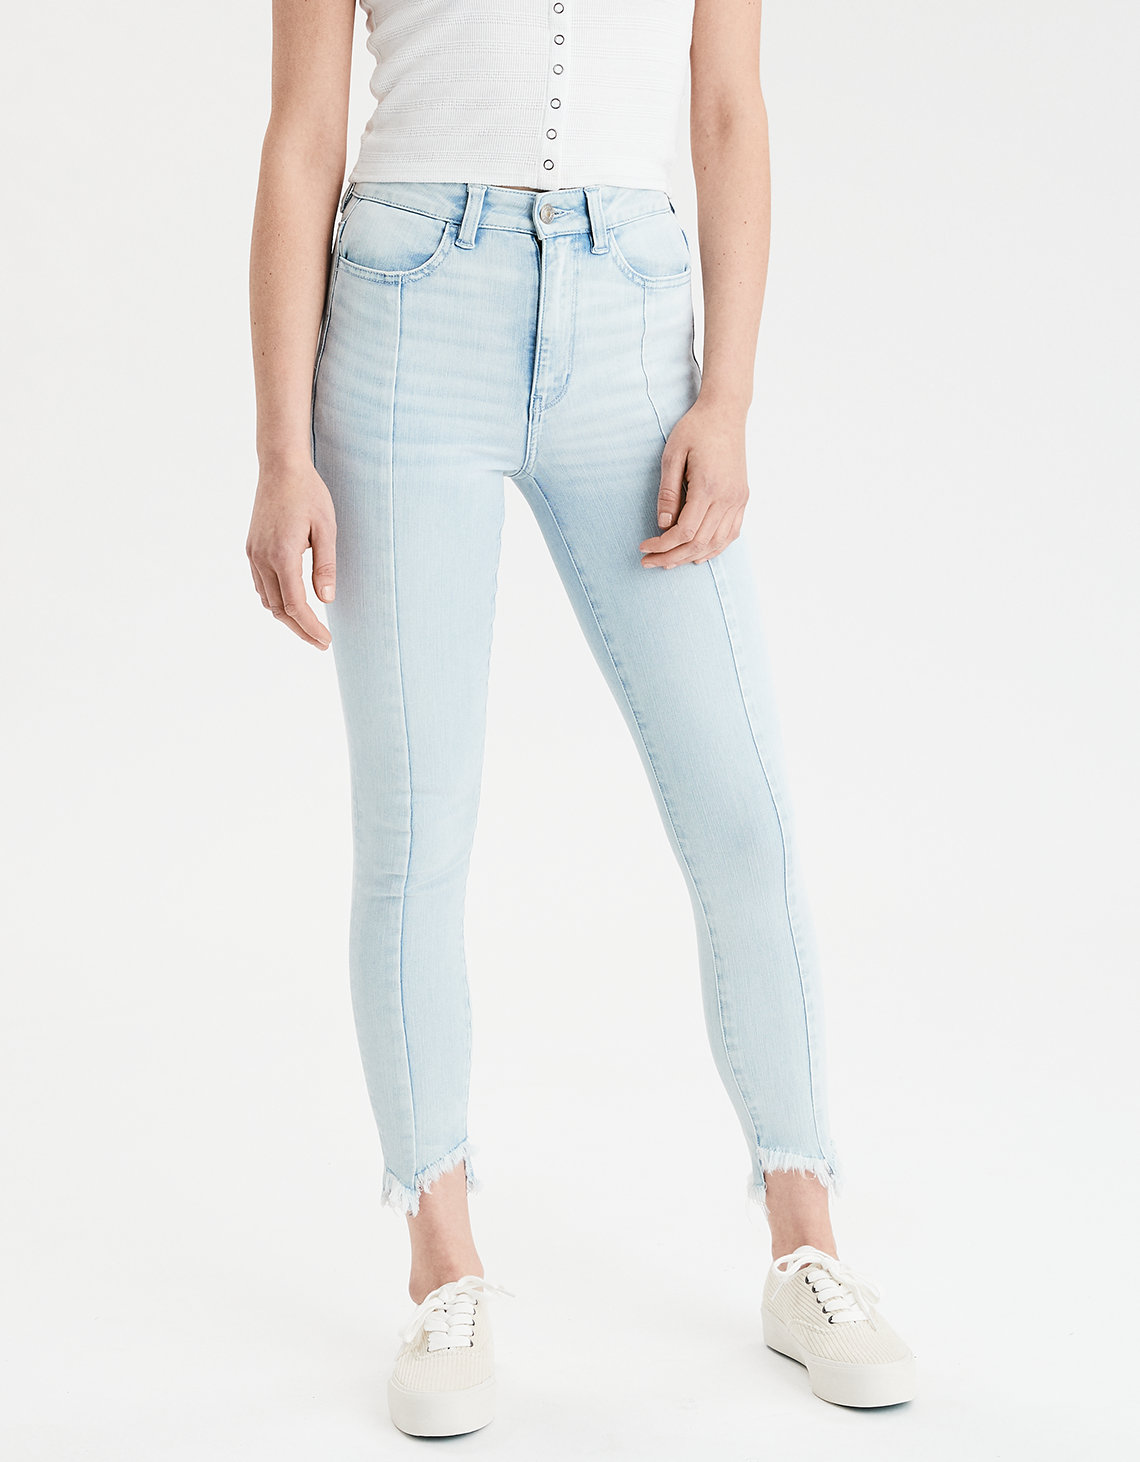 AE 360 Ne(X)t Level Highest Waist Jegging Crop